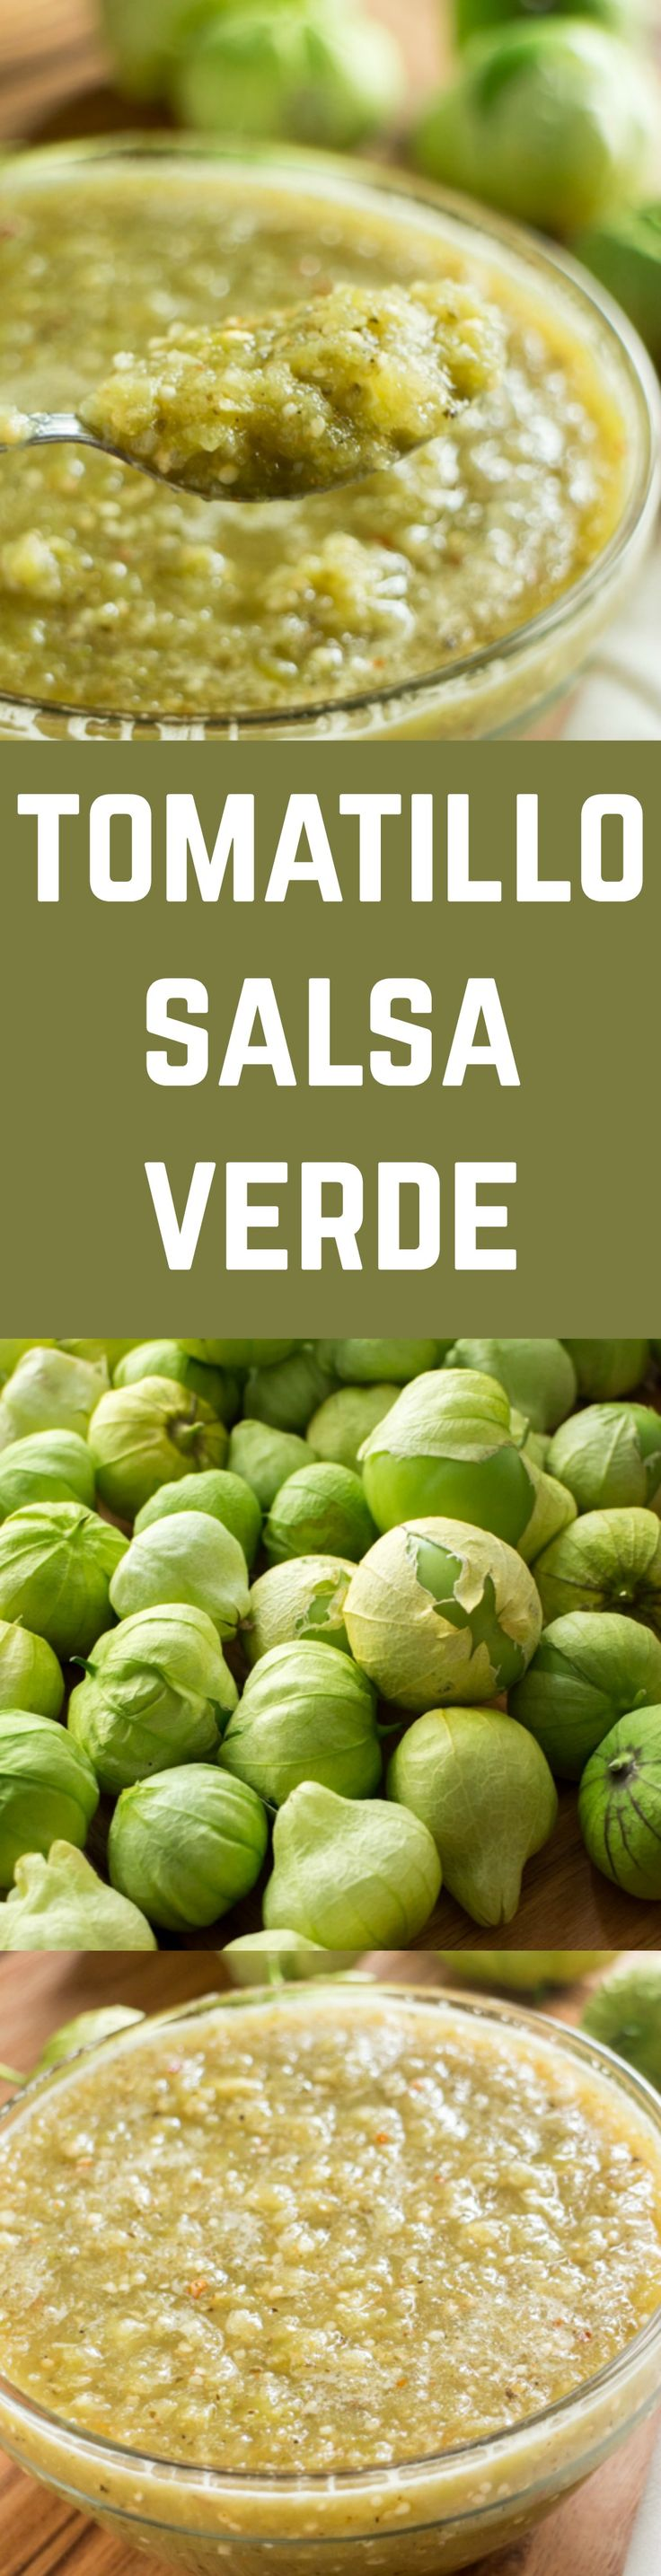 The best Salsa Verde recipe using fresh tomatillos and onions.  This recipe is easy to make and freezes great too!